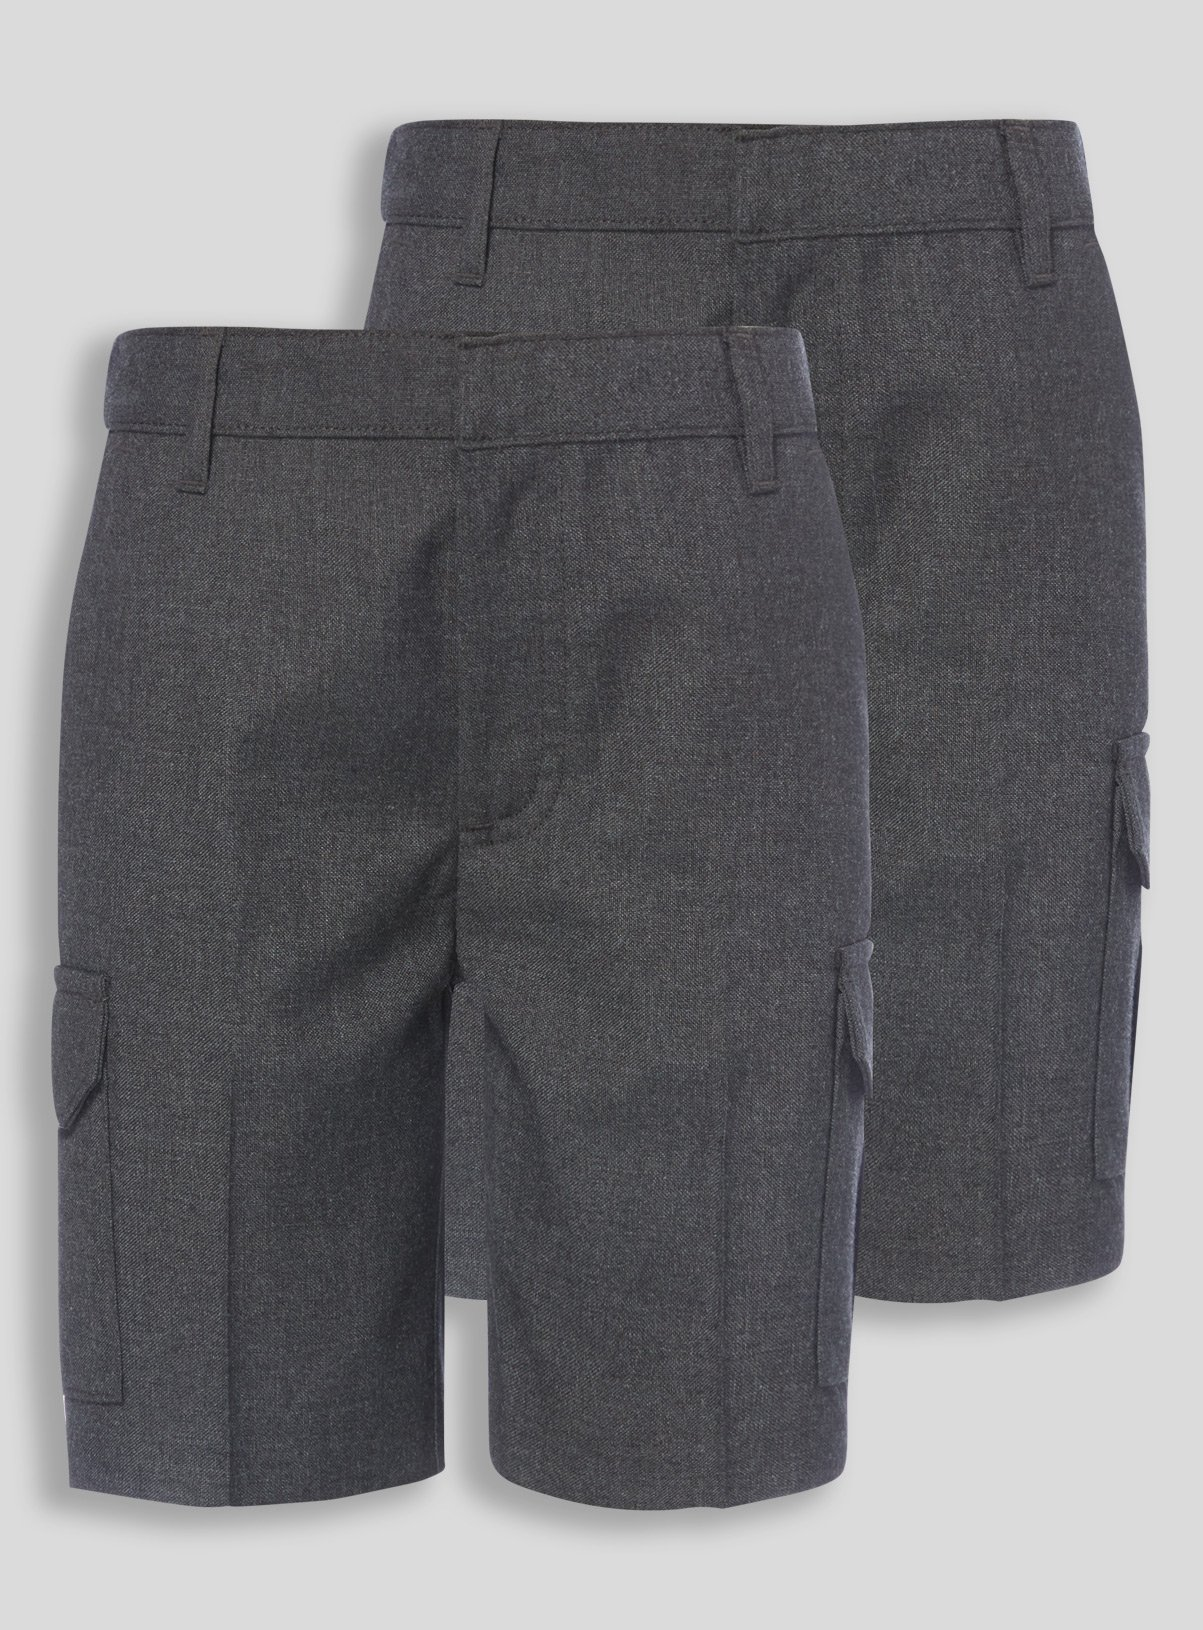 2 Pack Grey Cargo Shorts - 10 years